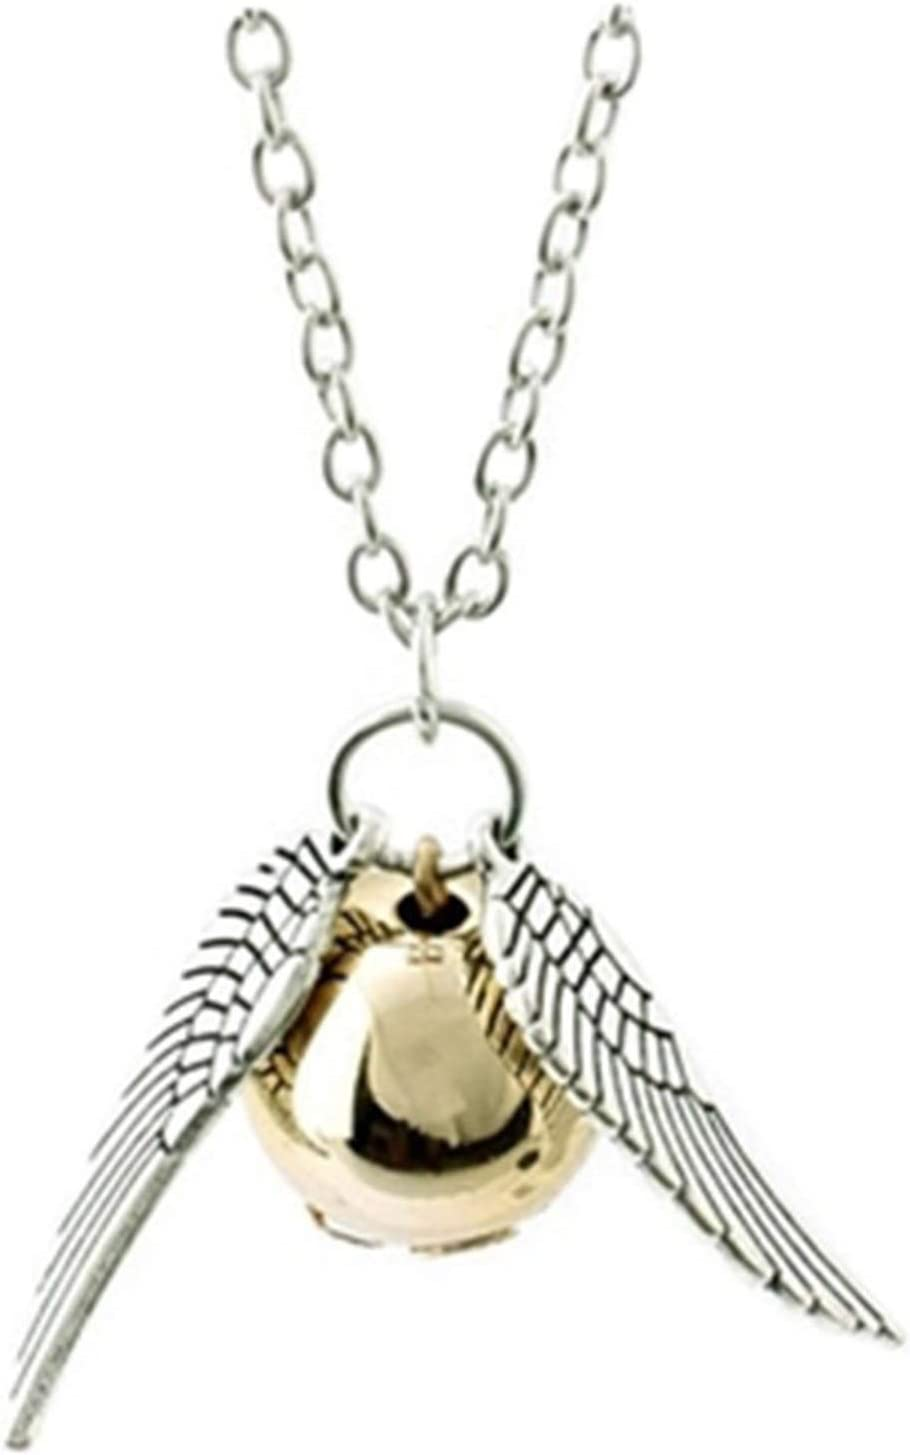 WMBDL Harry Potter Necklace Set Time Turner Deathly Hallows Golden Snitch Necklace for Harry Potter Fans Gifts Collection or Decorations Magical Cosplay Costume Jewelry Accessories (Silver)